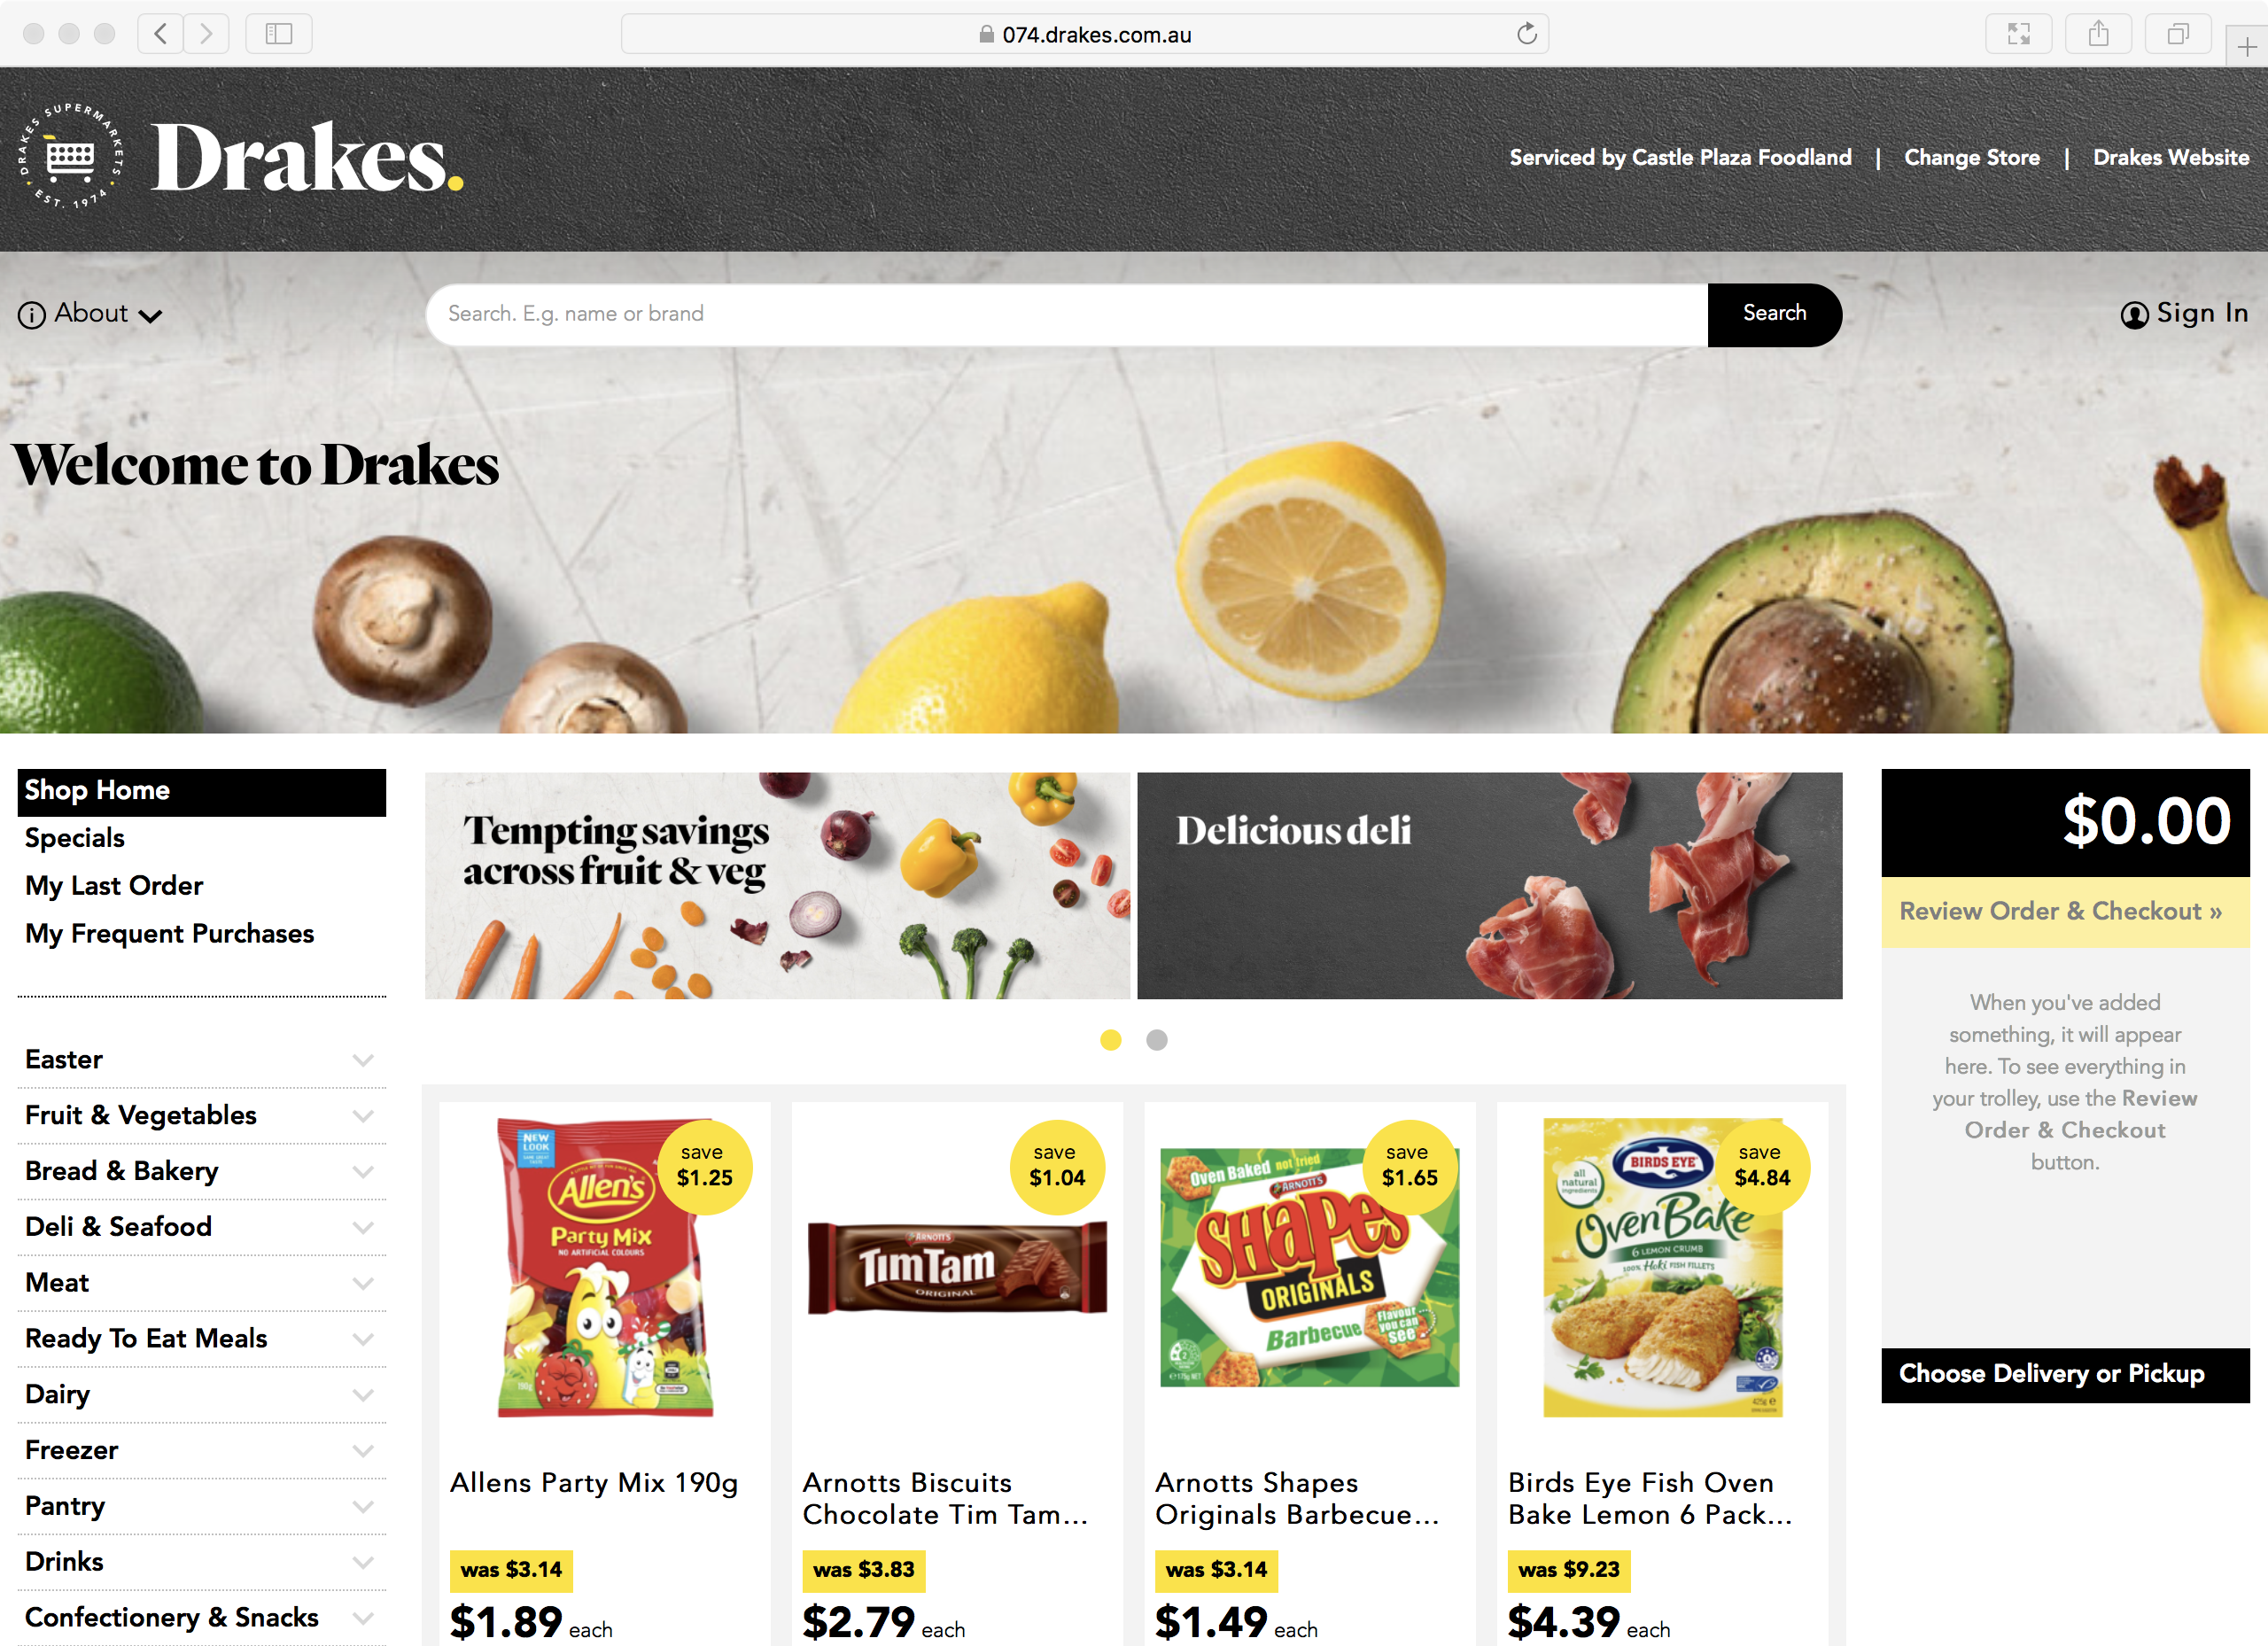 Visit the Castle Plaza Foodland online store